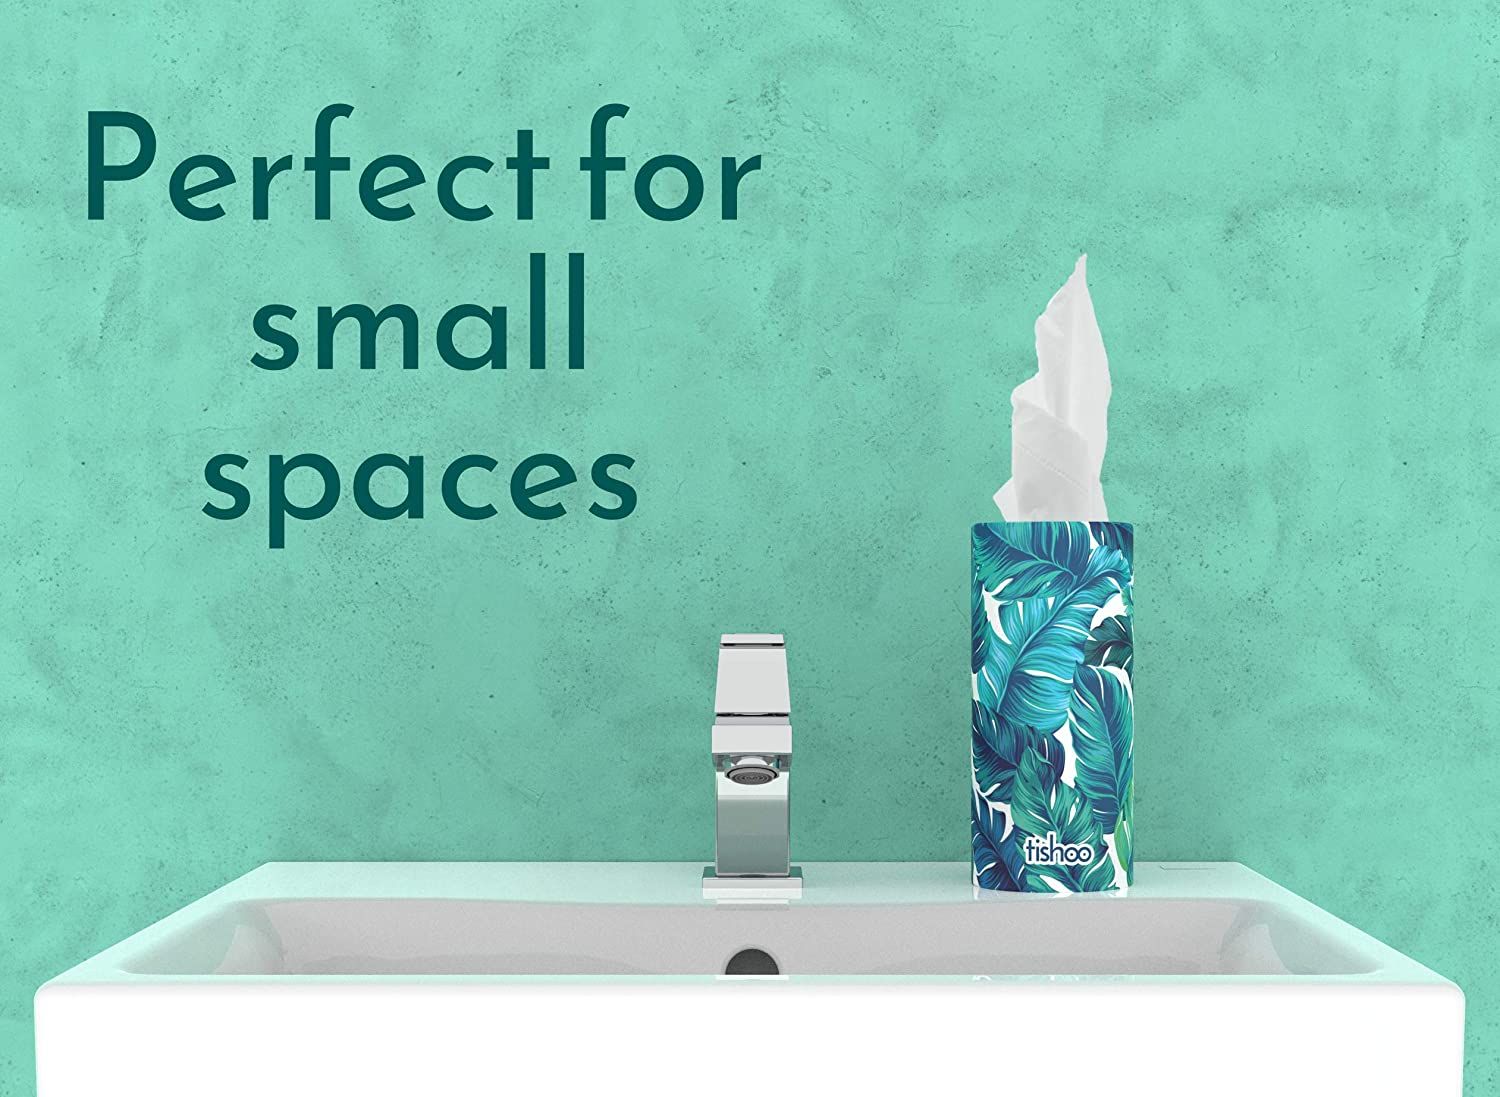 - Green//Leaves tishoo Car Tissue Tubes for Cup Holders /& Home Loose Tubes Stylish /& Compact 4 Tubes in Plastic-Free Packaging Re-useable as a car bin When Empty